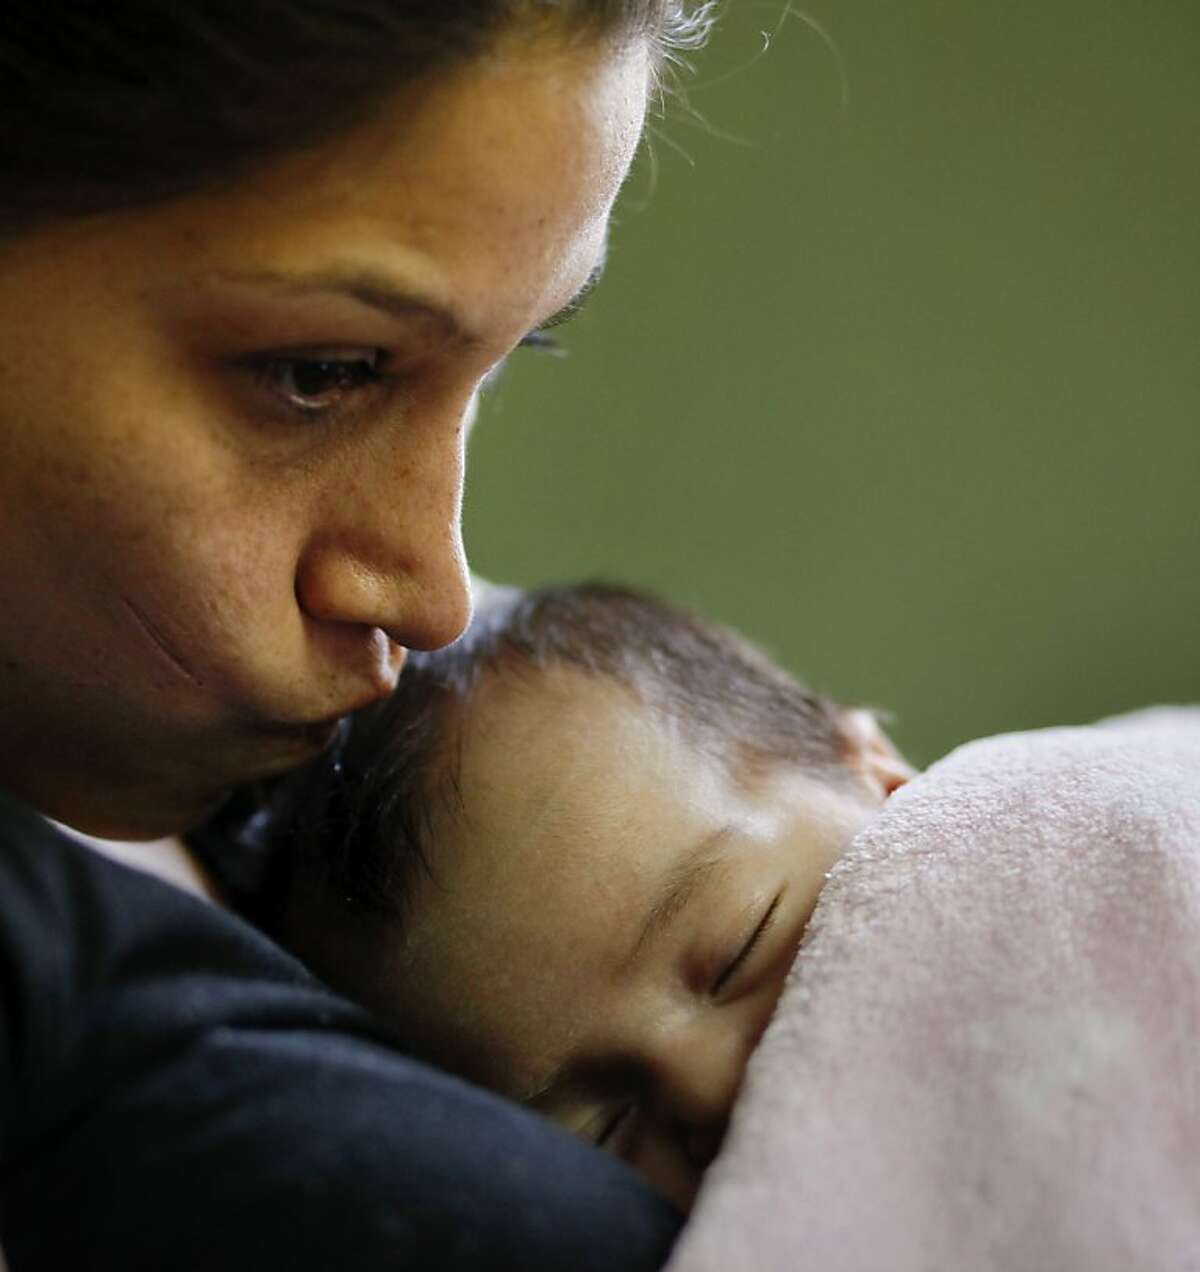 Gabrela Baca kisses the forehead of Dourelia, her 6 week old daughter as she watches over her 2 1/2 year old son Douglas, Wednesday March 27, 2013, at Star Community Home, which is run by the Catholic Charities in San Francisco, Calif.